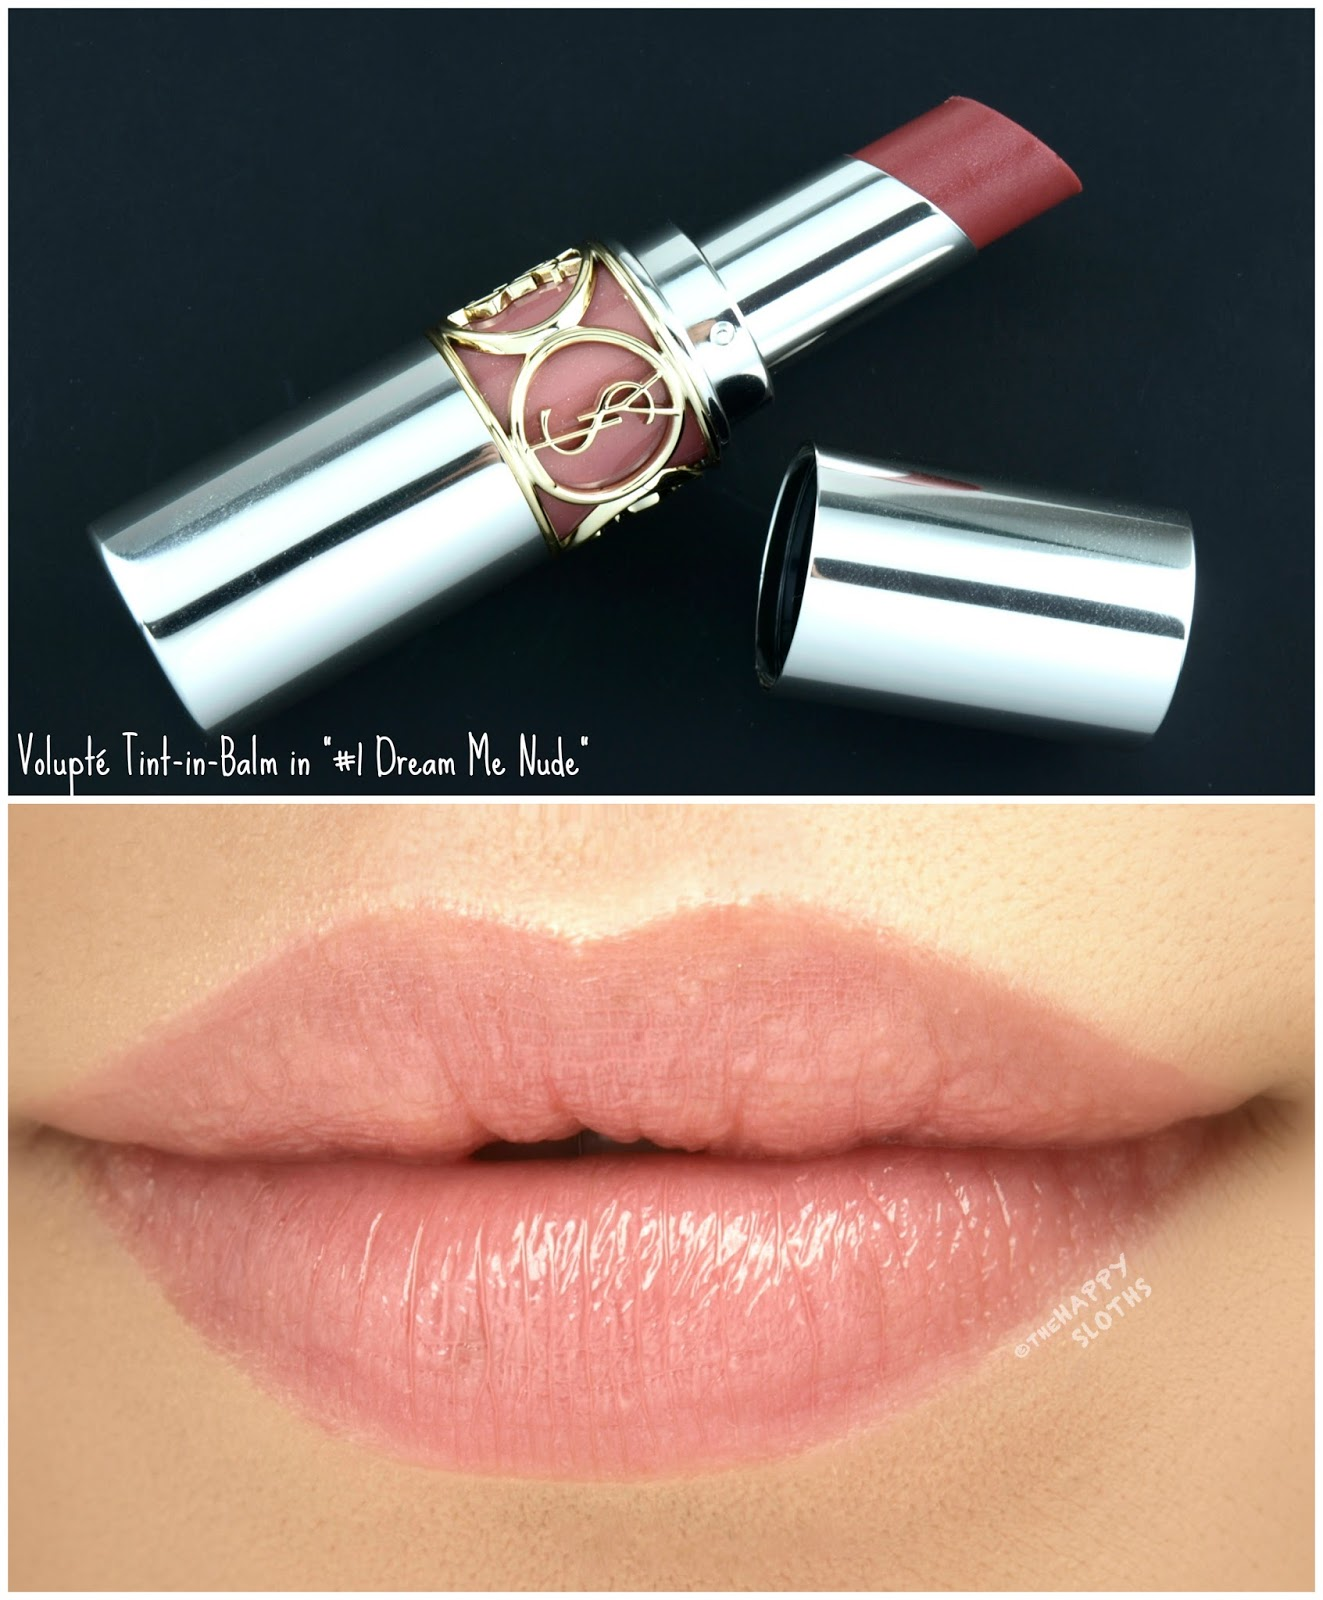 "Yves Saint Laurent Volupte Tint-in-Balm in ""1 Dream Me Nude"": Review and Swatches"